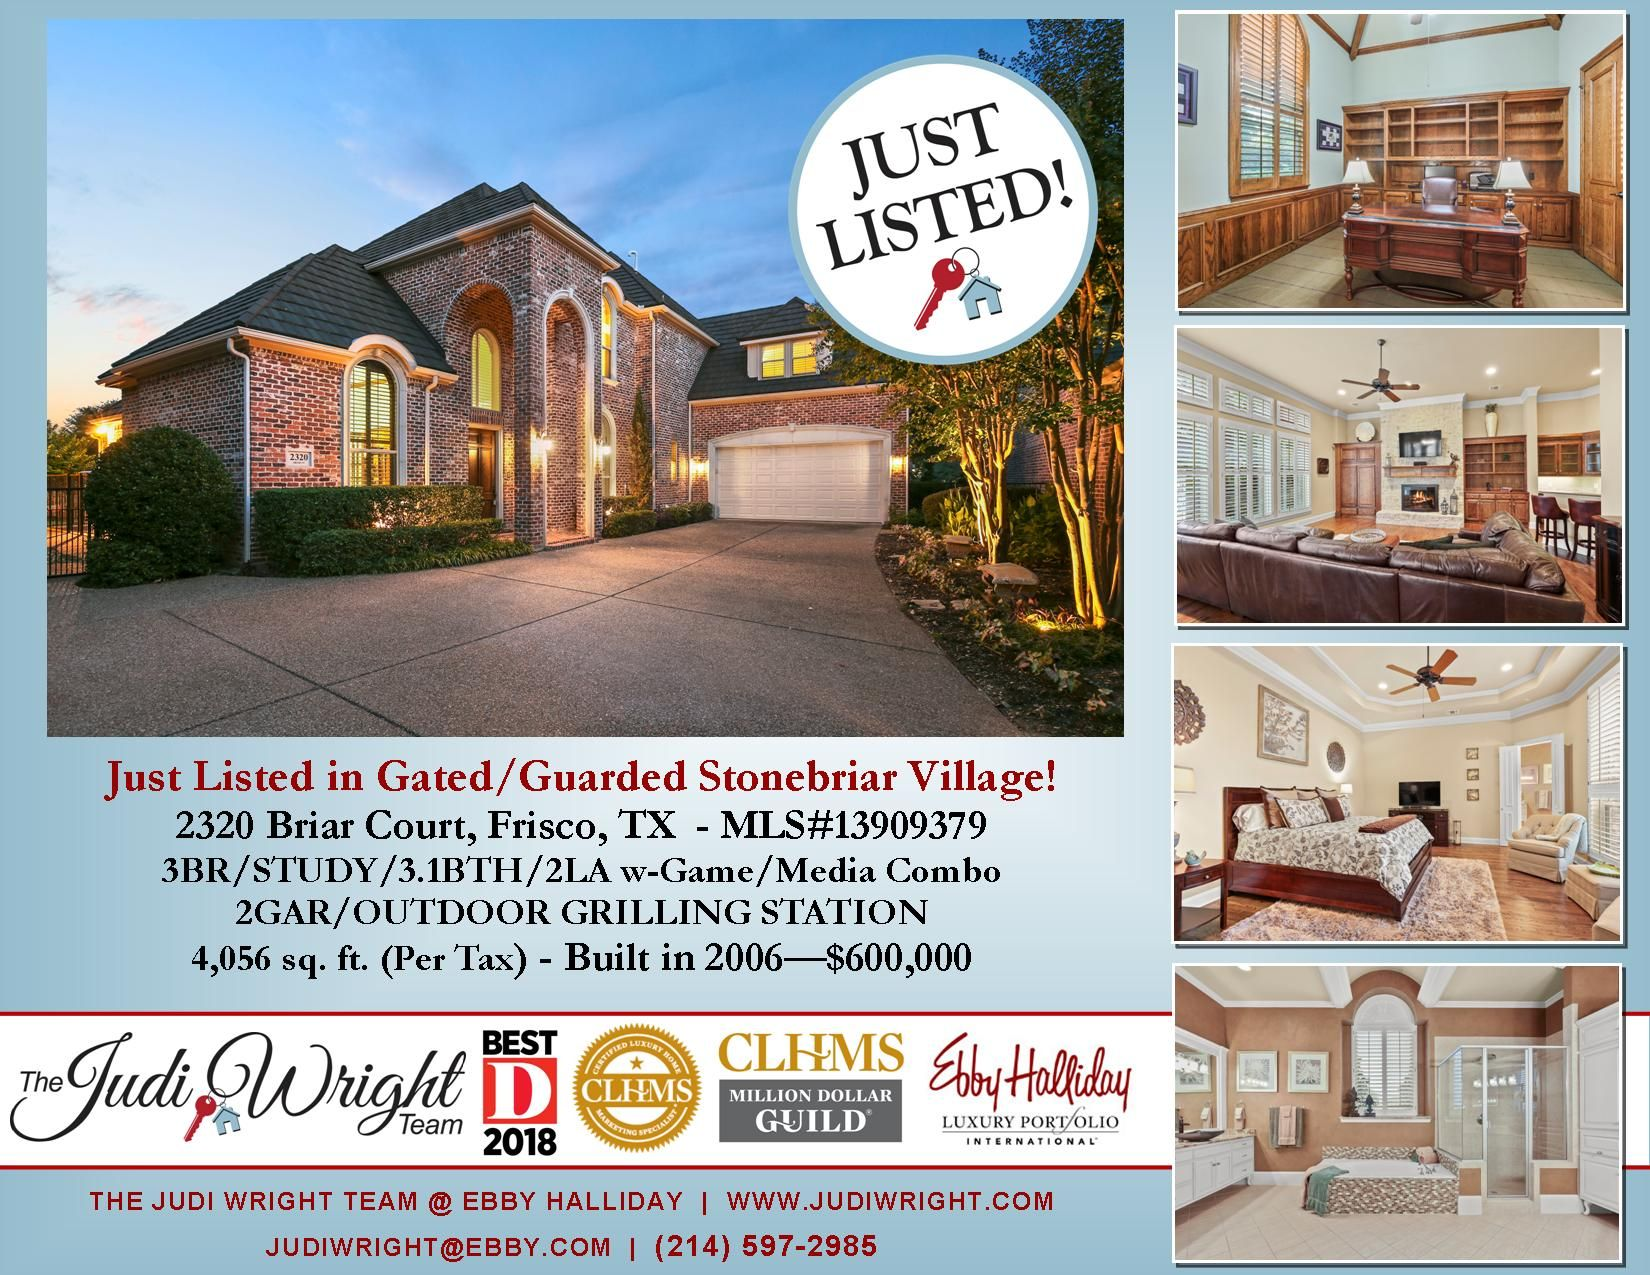 Imagine Living In A Gated Guarded Golf Course Community In Frisco W A Pool Spa Yard Blt In Grilling Station For Onl Outdoor Grill Station Frisco Spa Pool